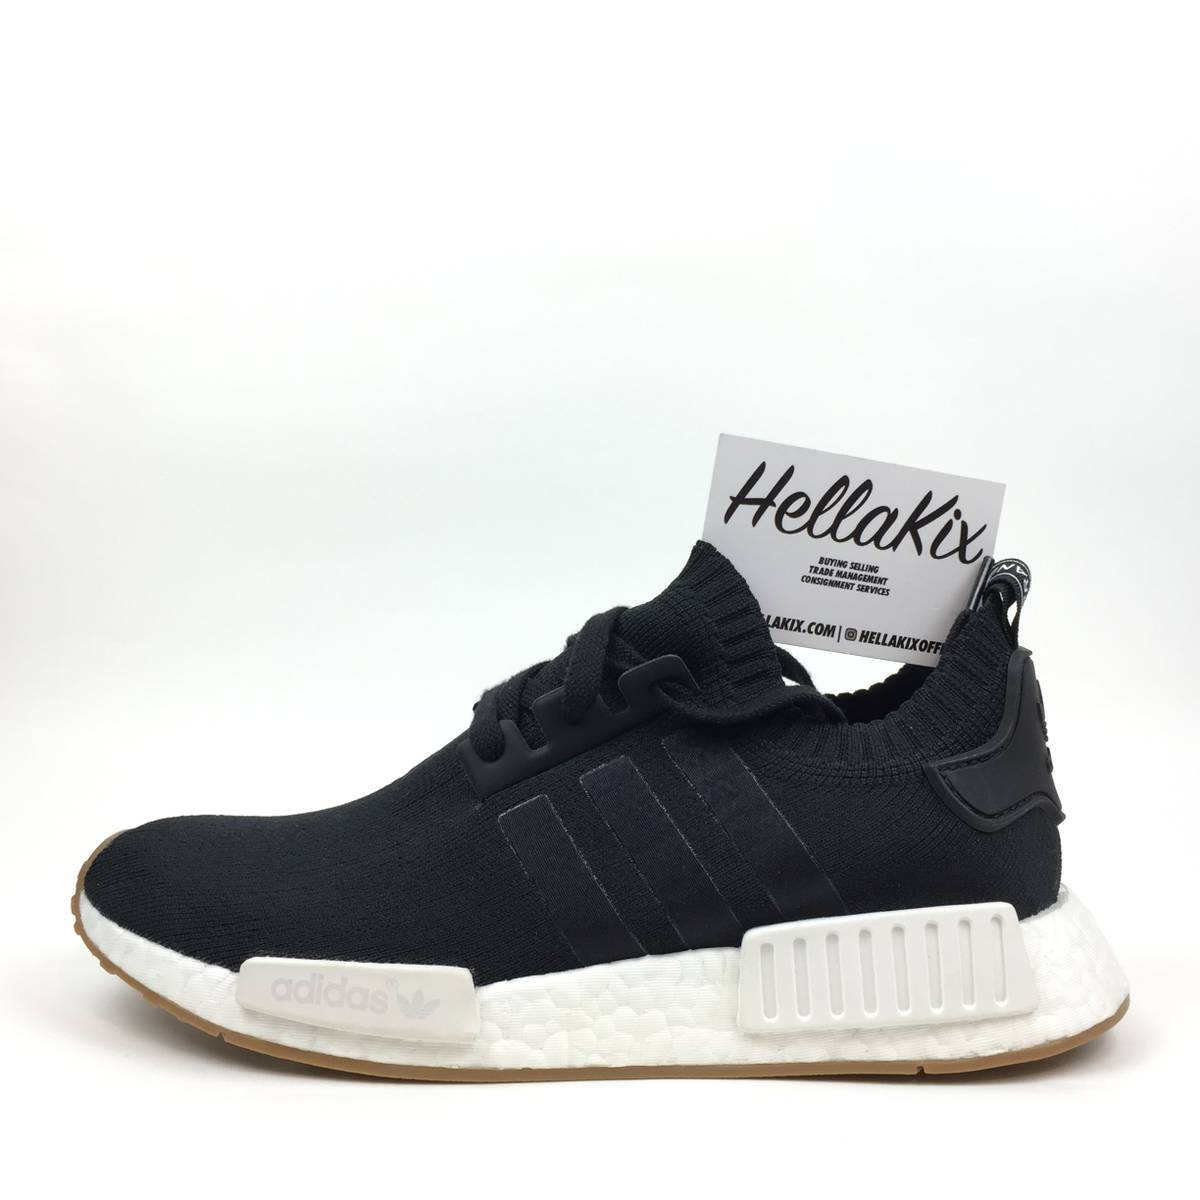 758e6df6cbf6b Finish Line Just Restocked adidas NMD R1 Colorways SneakerWatch